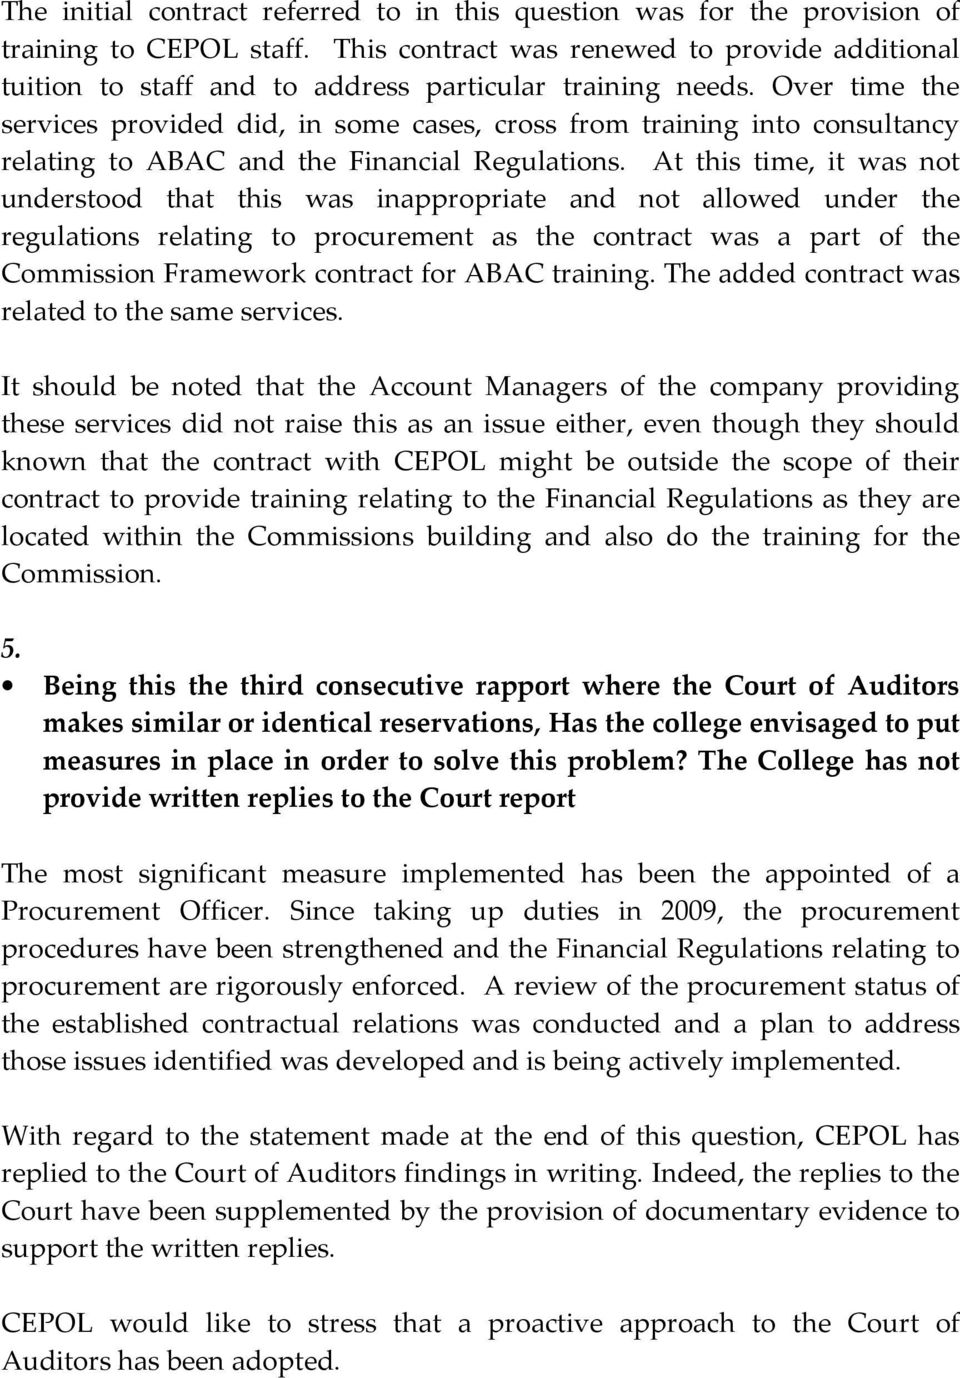 Over time the services provided did, in some cases, cross from training into consultancy relating to ABAC and the Financial Regulations.